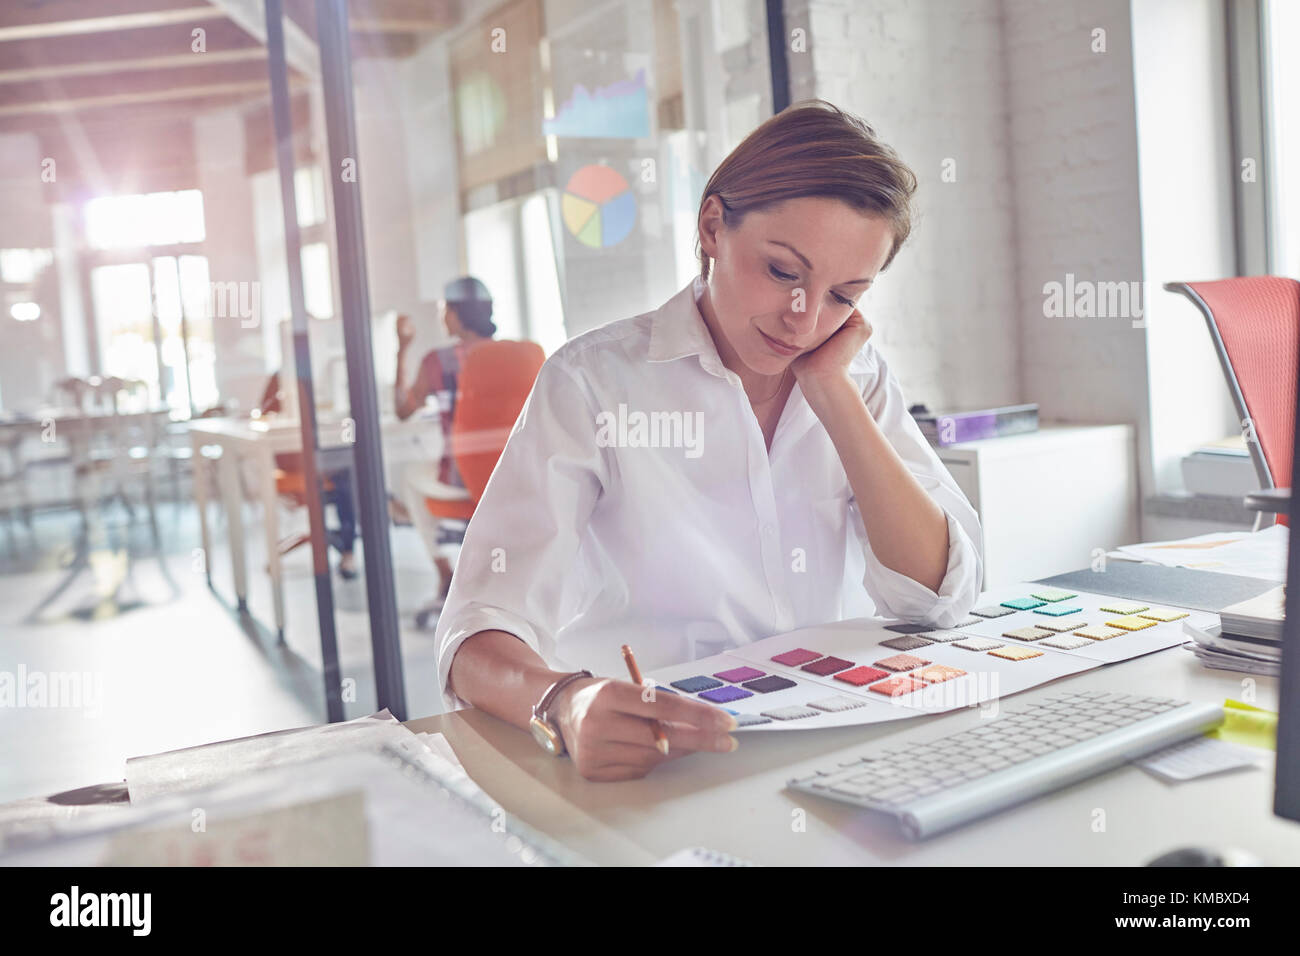 Female design professional reviewing color swatches in office - Stock Image